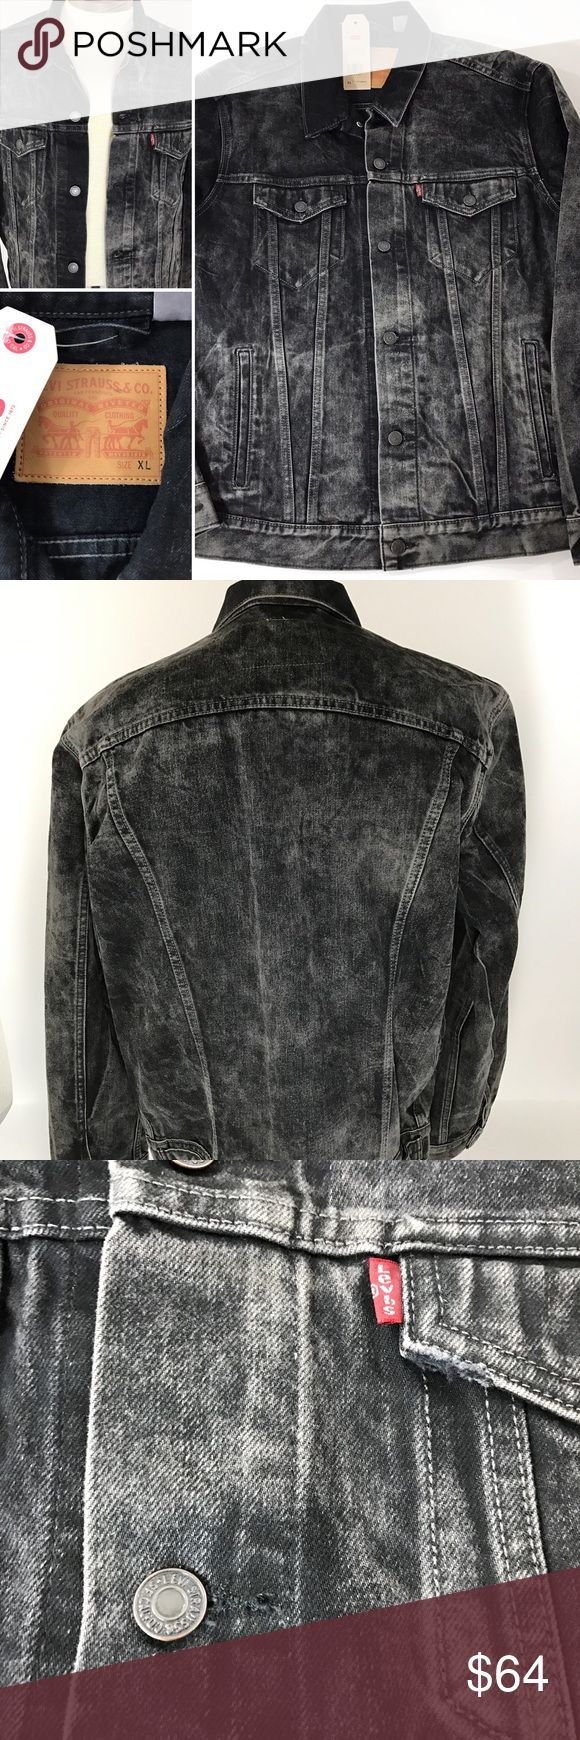 """Men's Levi NWT acid wash black Jean jacket XL Measurements Chest arm pit to arm pit 23"""" Length measured middle back from bottom collar seam to bottom 26.5"""" Levi's Jackets & Coats"""